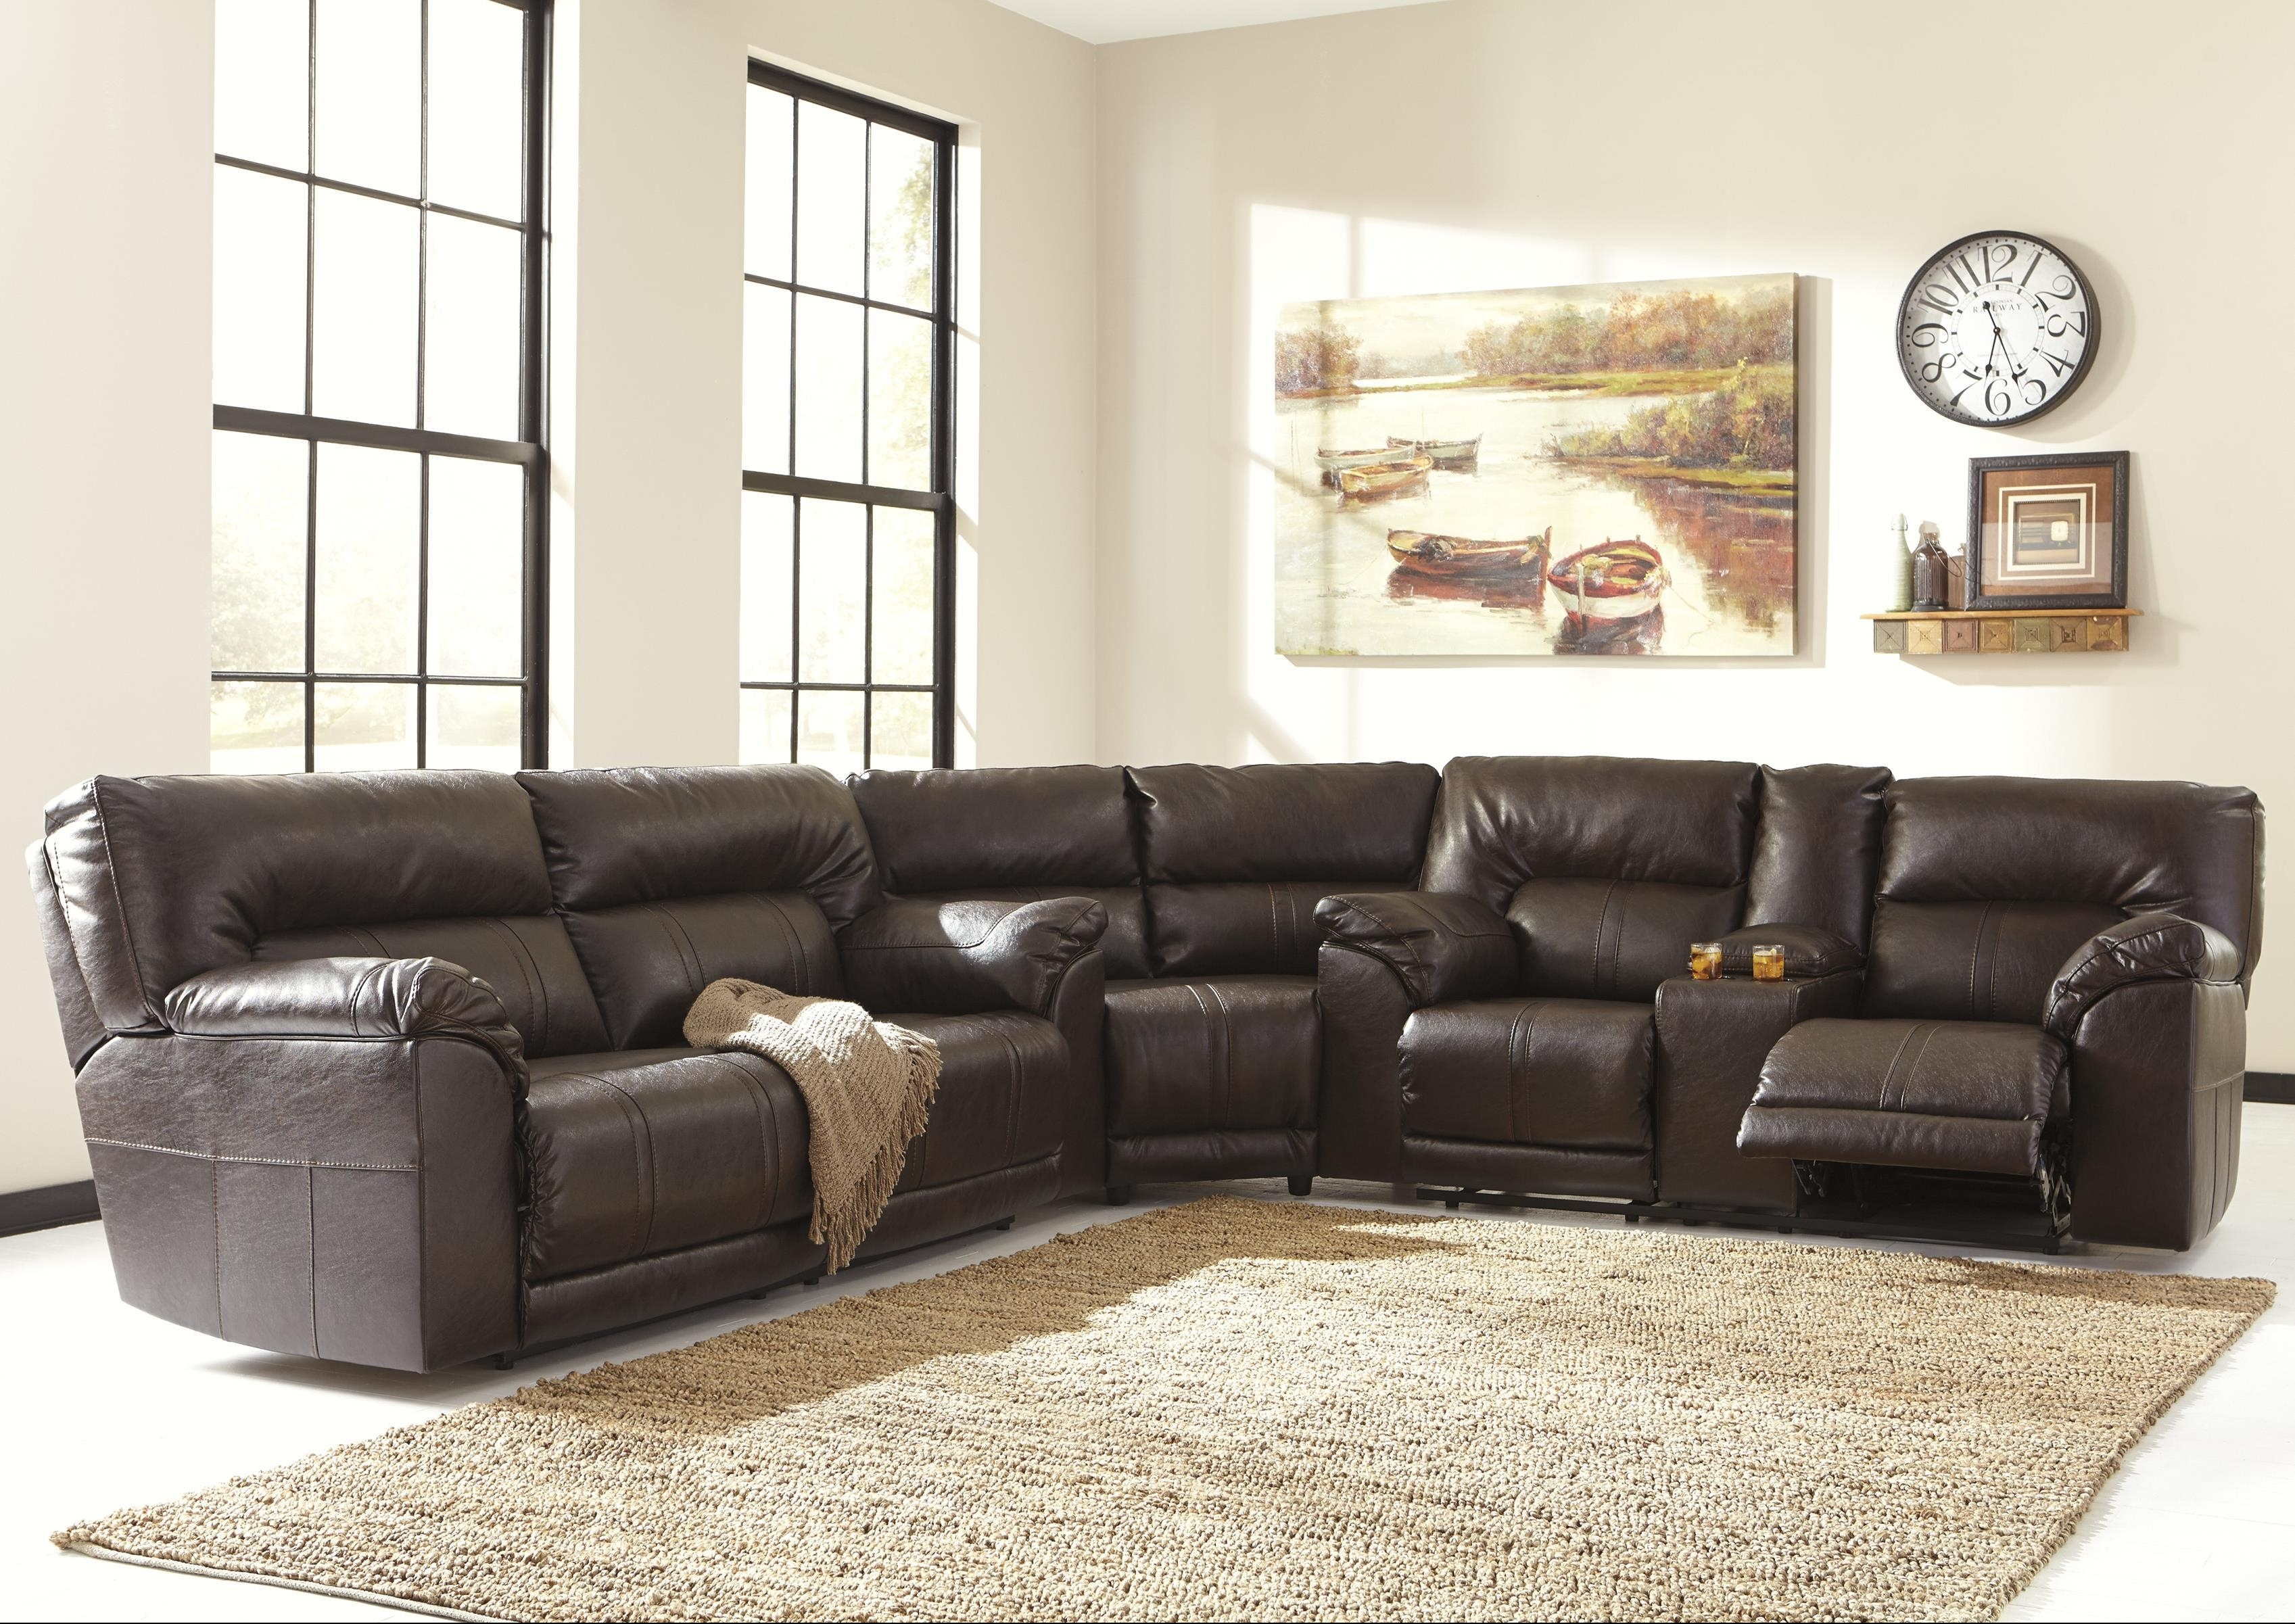 Benchcraft Barrettsville Durablend® 3 Piece Reclining Sectional With Regard To Reclining Sectional Sofas (Image 4 of 10)